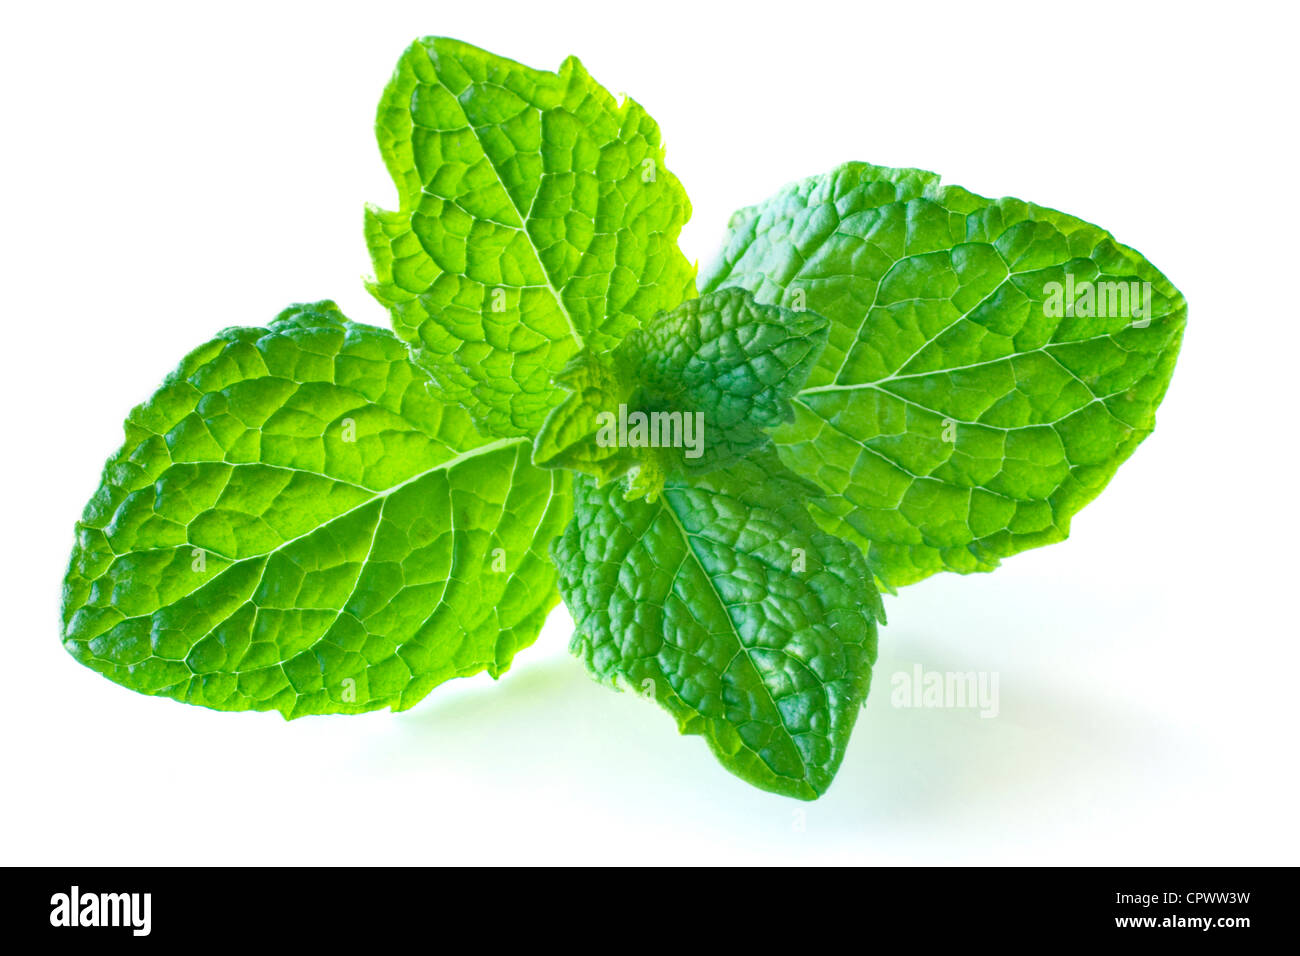 Sprig of mint, isolated on white, with soft natural shadow. - Stock Image